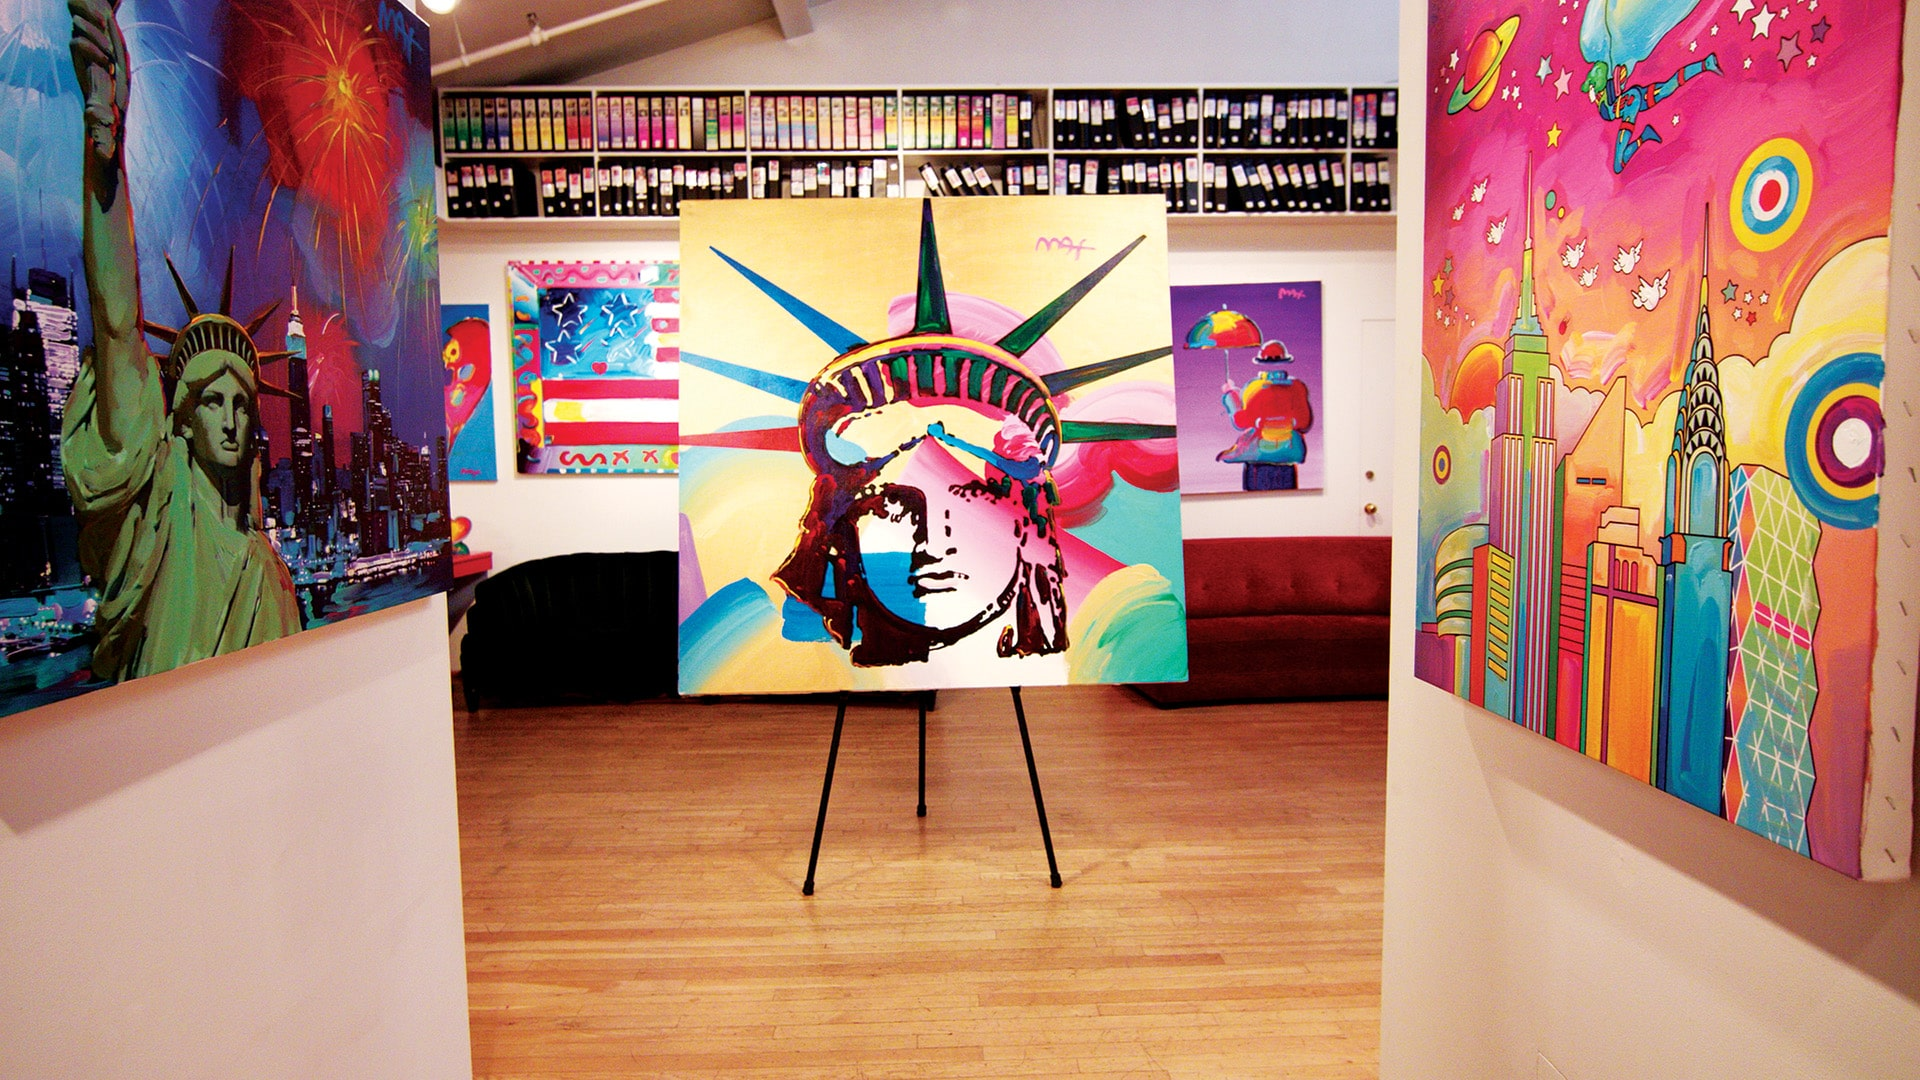 The Surrealistic Art of Peter Max: How His Style Made Him an Art Icon